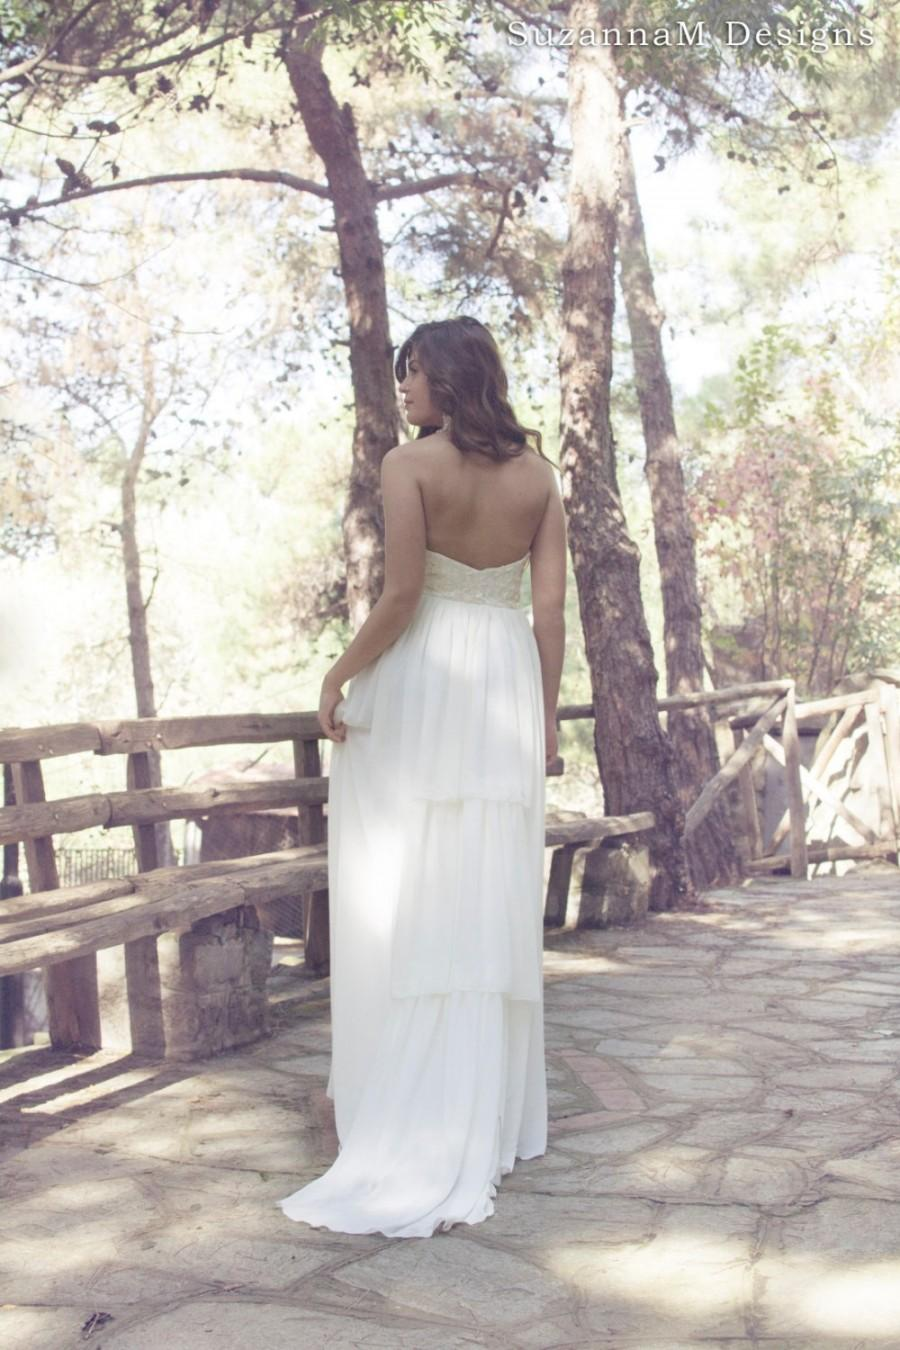 Mariage - Boho Wedding Dress Strapless Bridal Gown Long Bohemian Dress Lace Gown - Handmade by SuzannaMDesigns